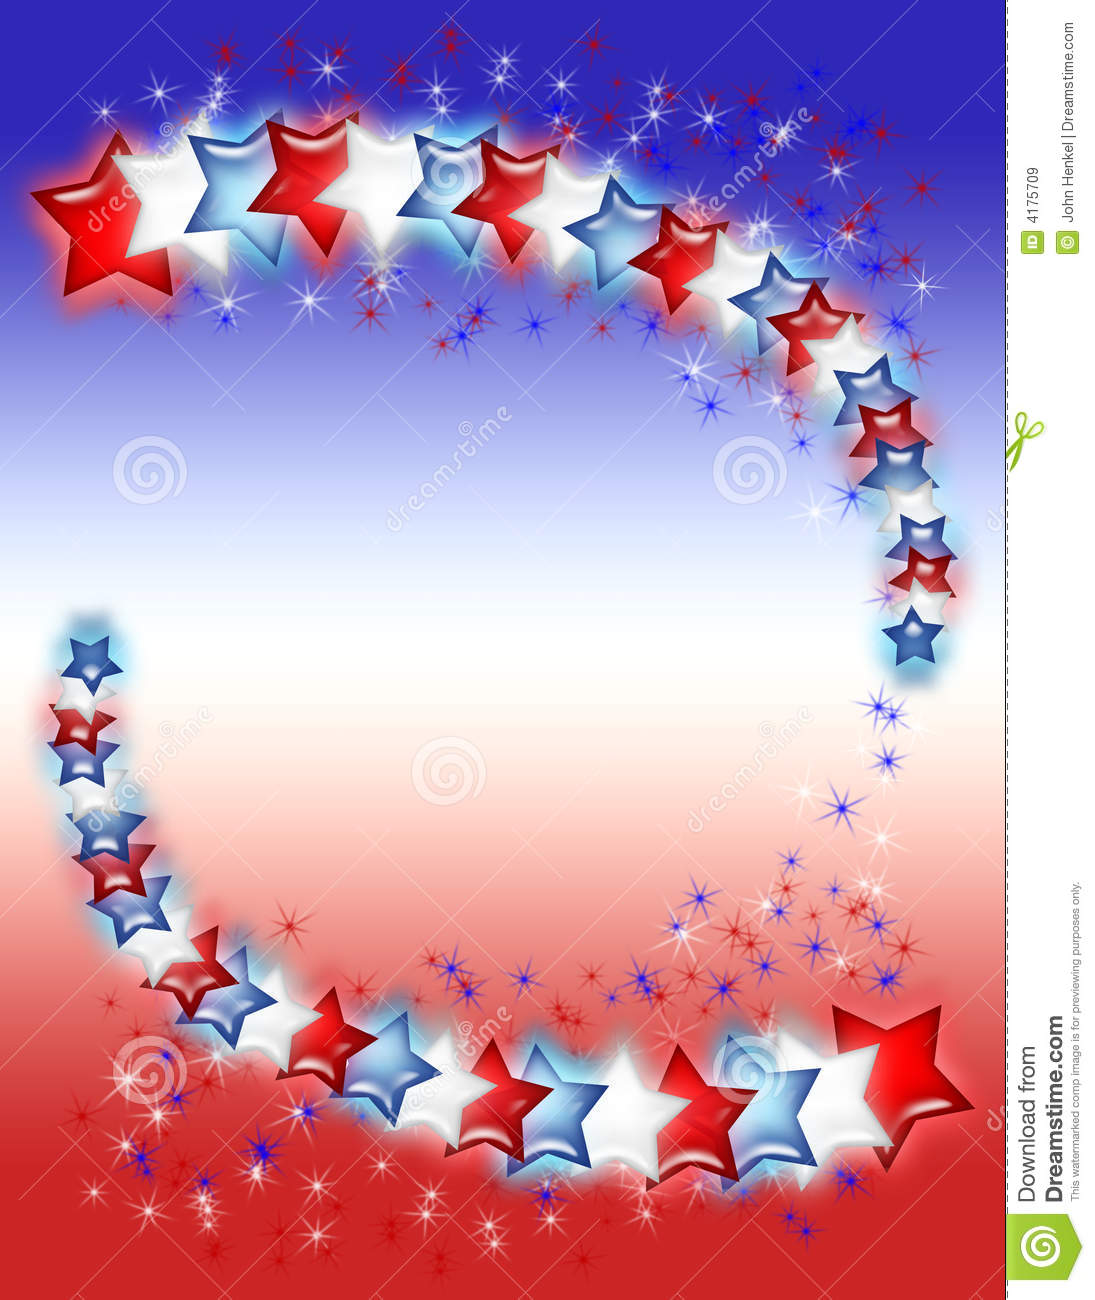 red white and blue stars stock illustration illustration of color 4175709 dreamstime com